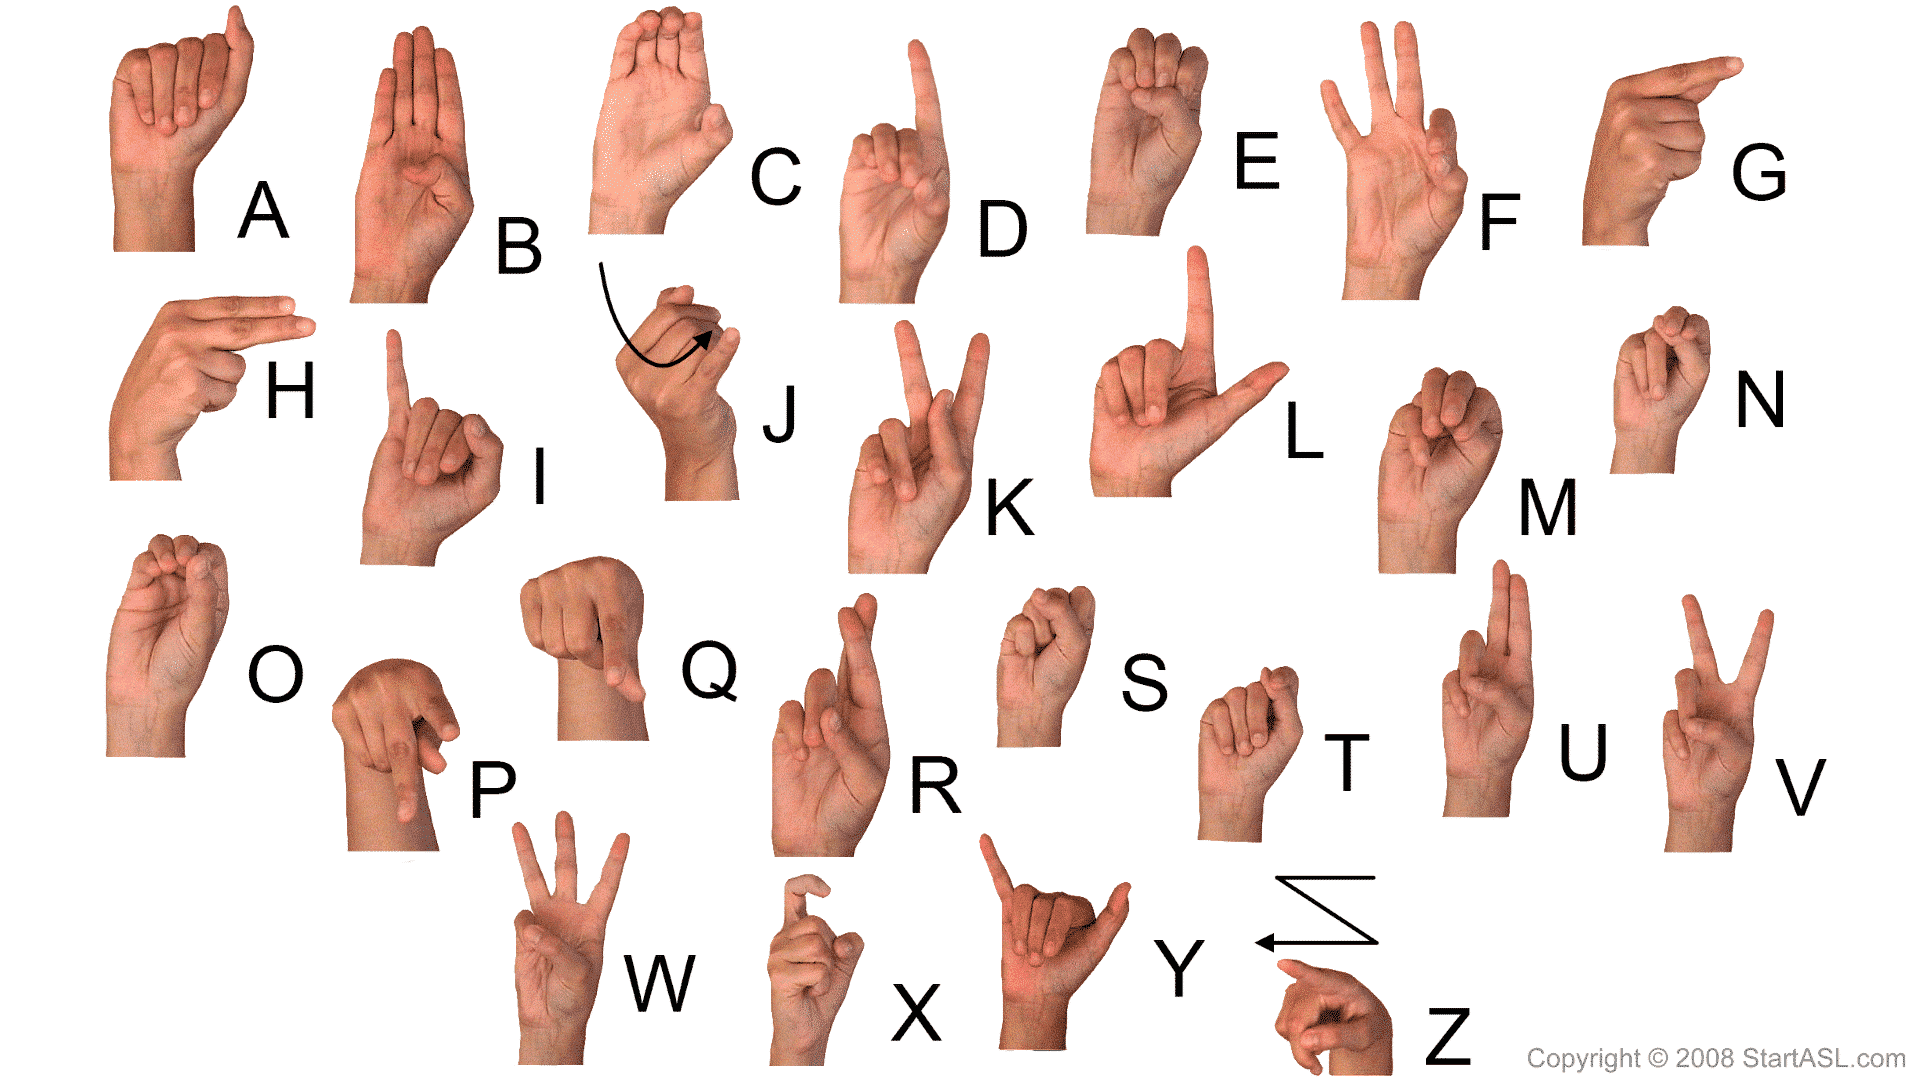 Sign Language Alphabet 6 Free Downloads To Learn It Fast Start Asl